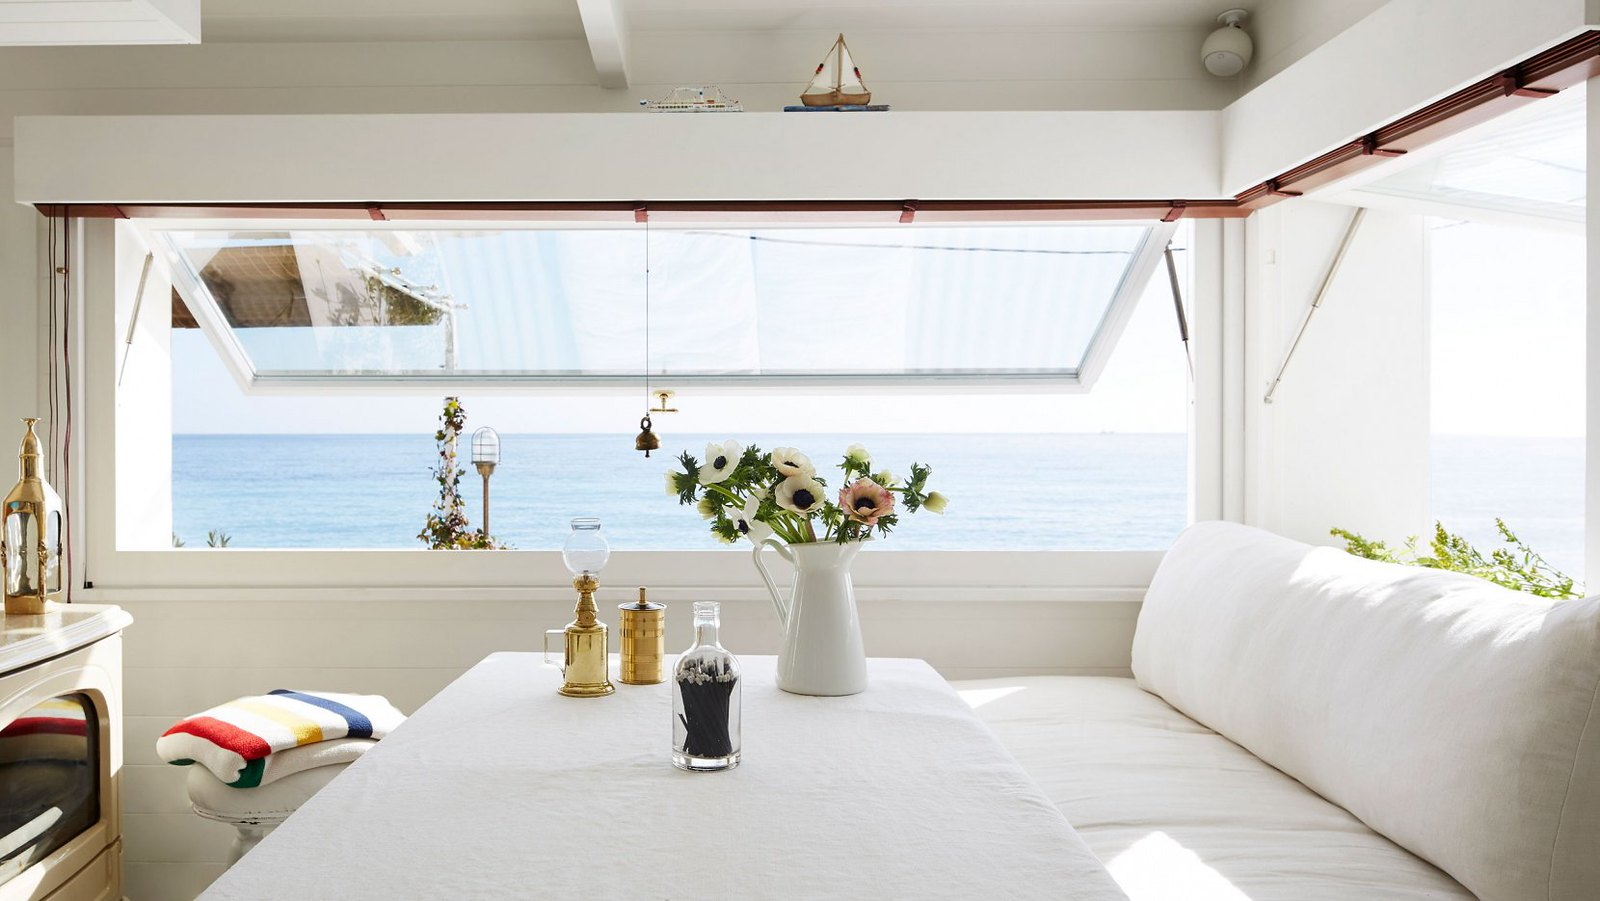 Nautical Interior Design Of A Mediterranean Cabin By Emil Humbert And  Christophe Poyet